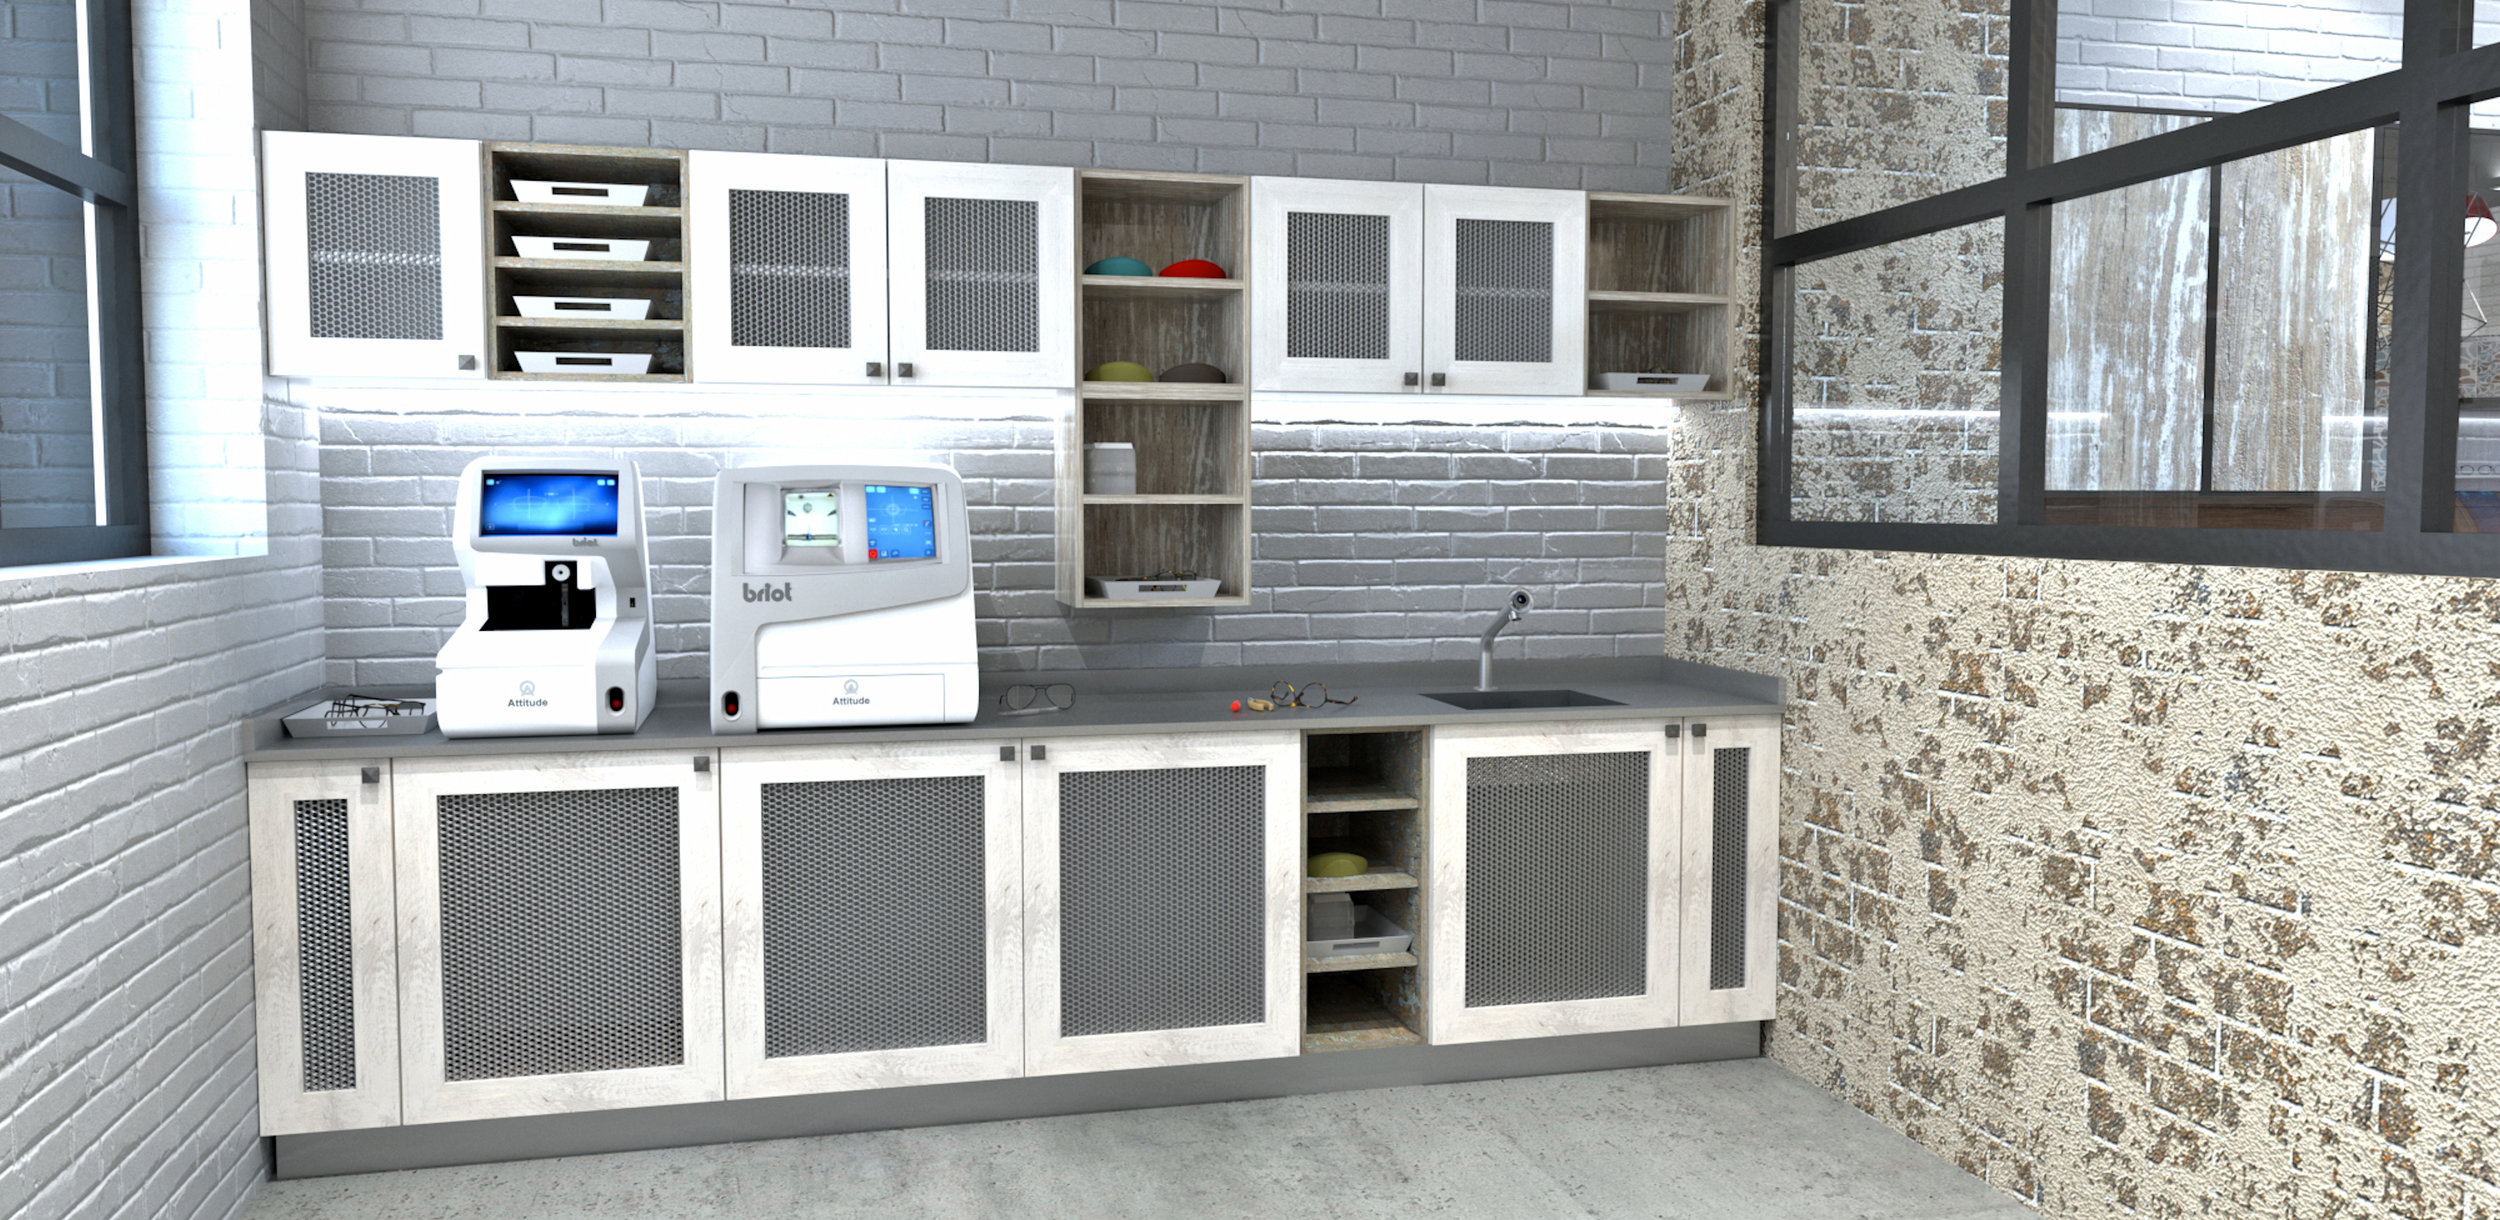 ORGANIZED LAB   Cabinetry with built-in amenities will organize your Lab, keep it clean and enable an efficient work flow.